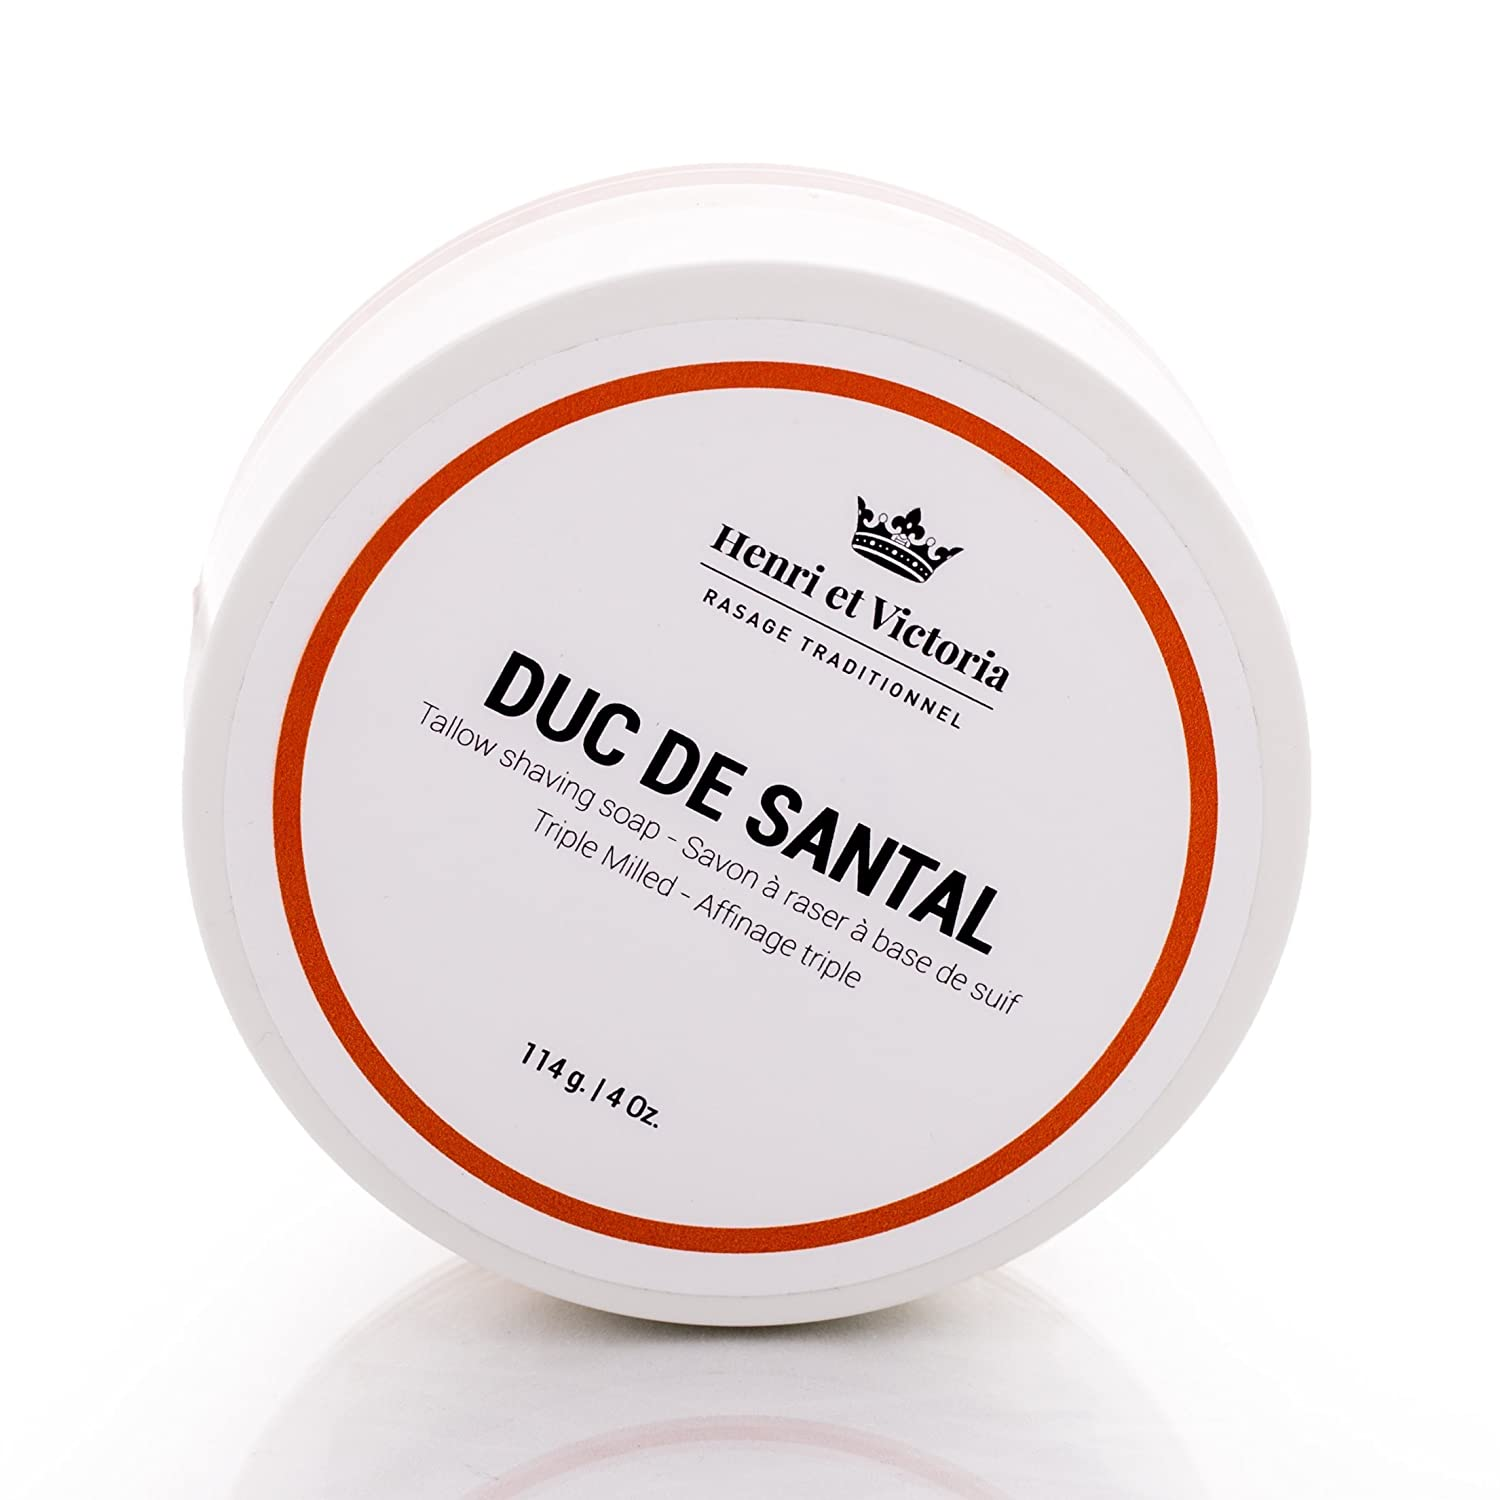 Duc de Santal Tallow Triple Milled Shaving Soap For Men | Hand Made in CANADA by Henri et Victoria |Moisturizing, Ultra Glide, Cushioning, Easy Lather, Prevent Razor Burn and Dry Skin | 114 g (4 oz) Henri et Victoria Inc.